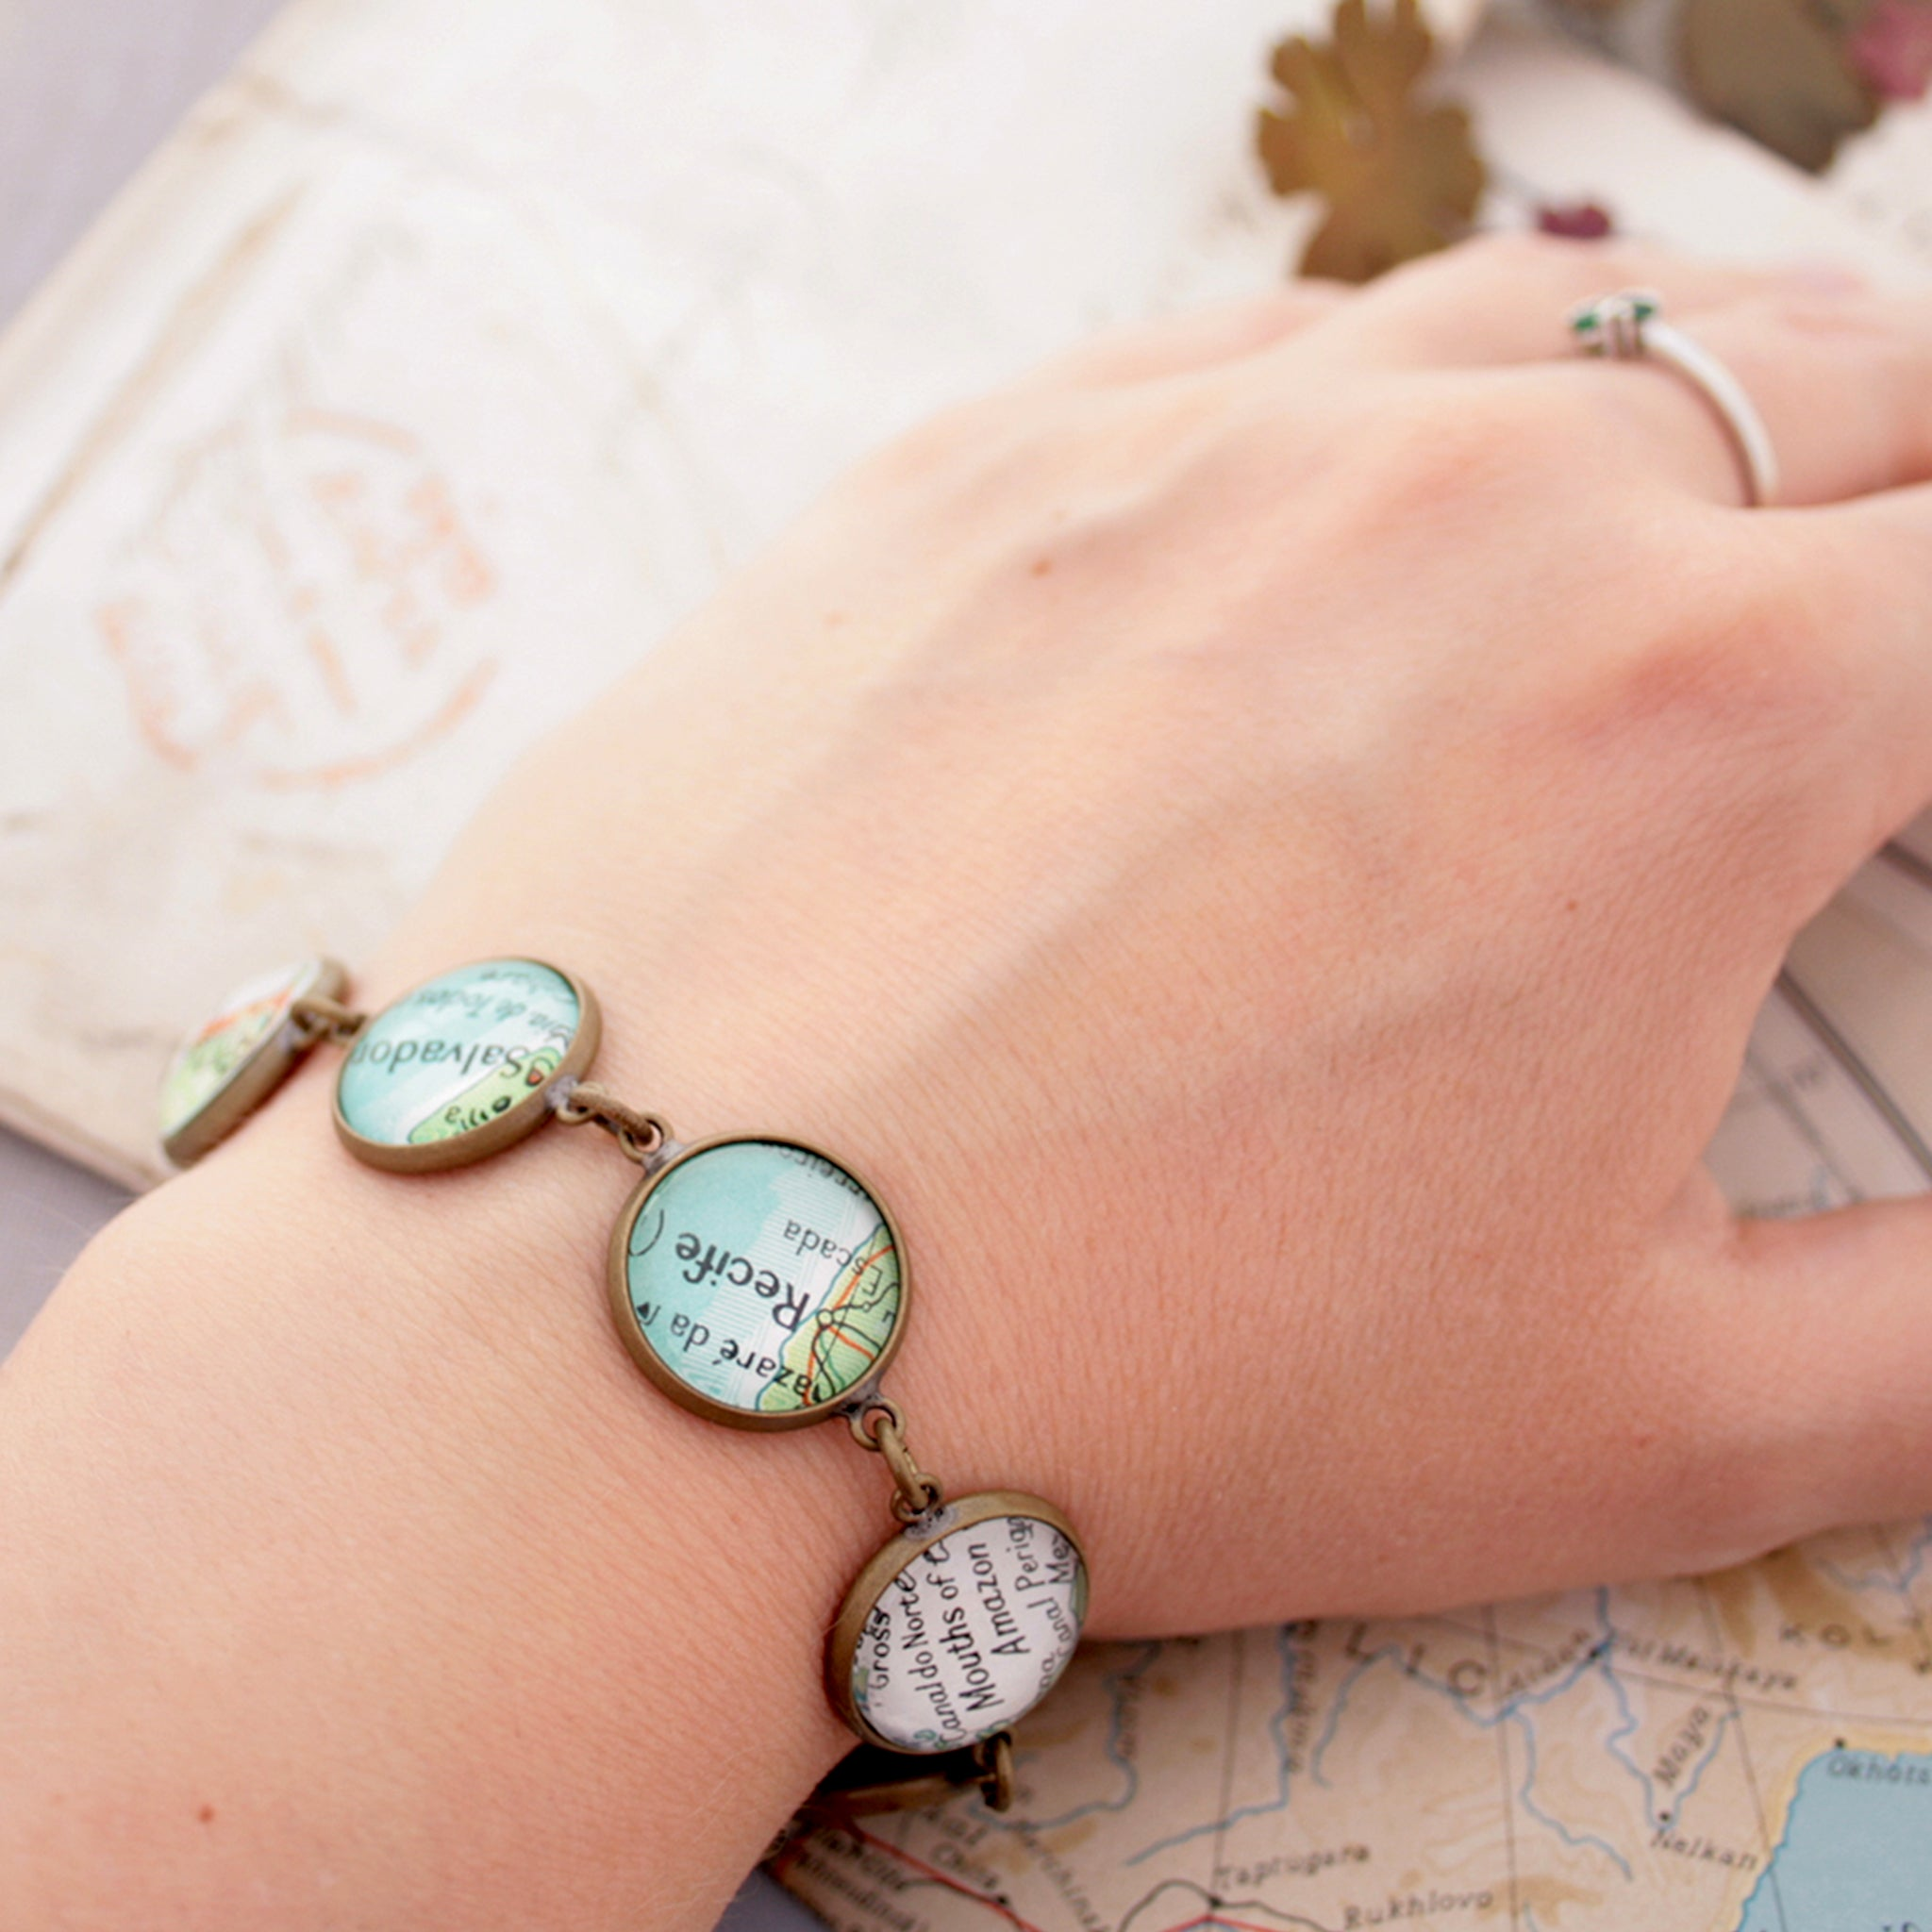 Worn on hand Antique bronze beaded bracelet featuring different map locations